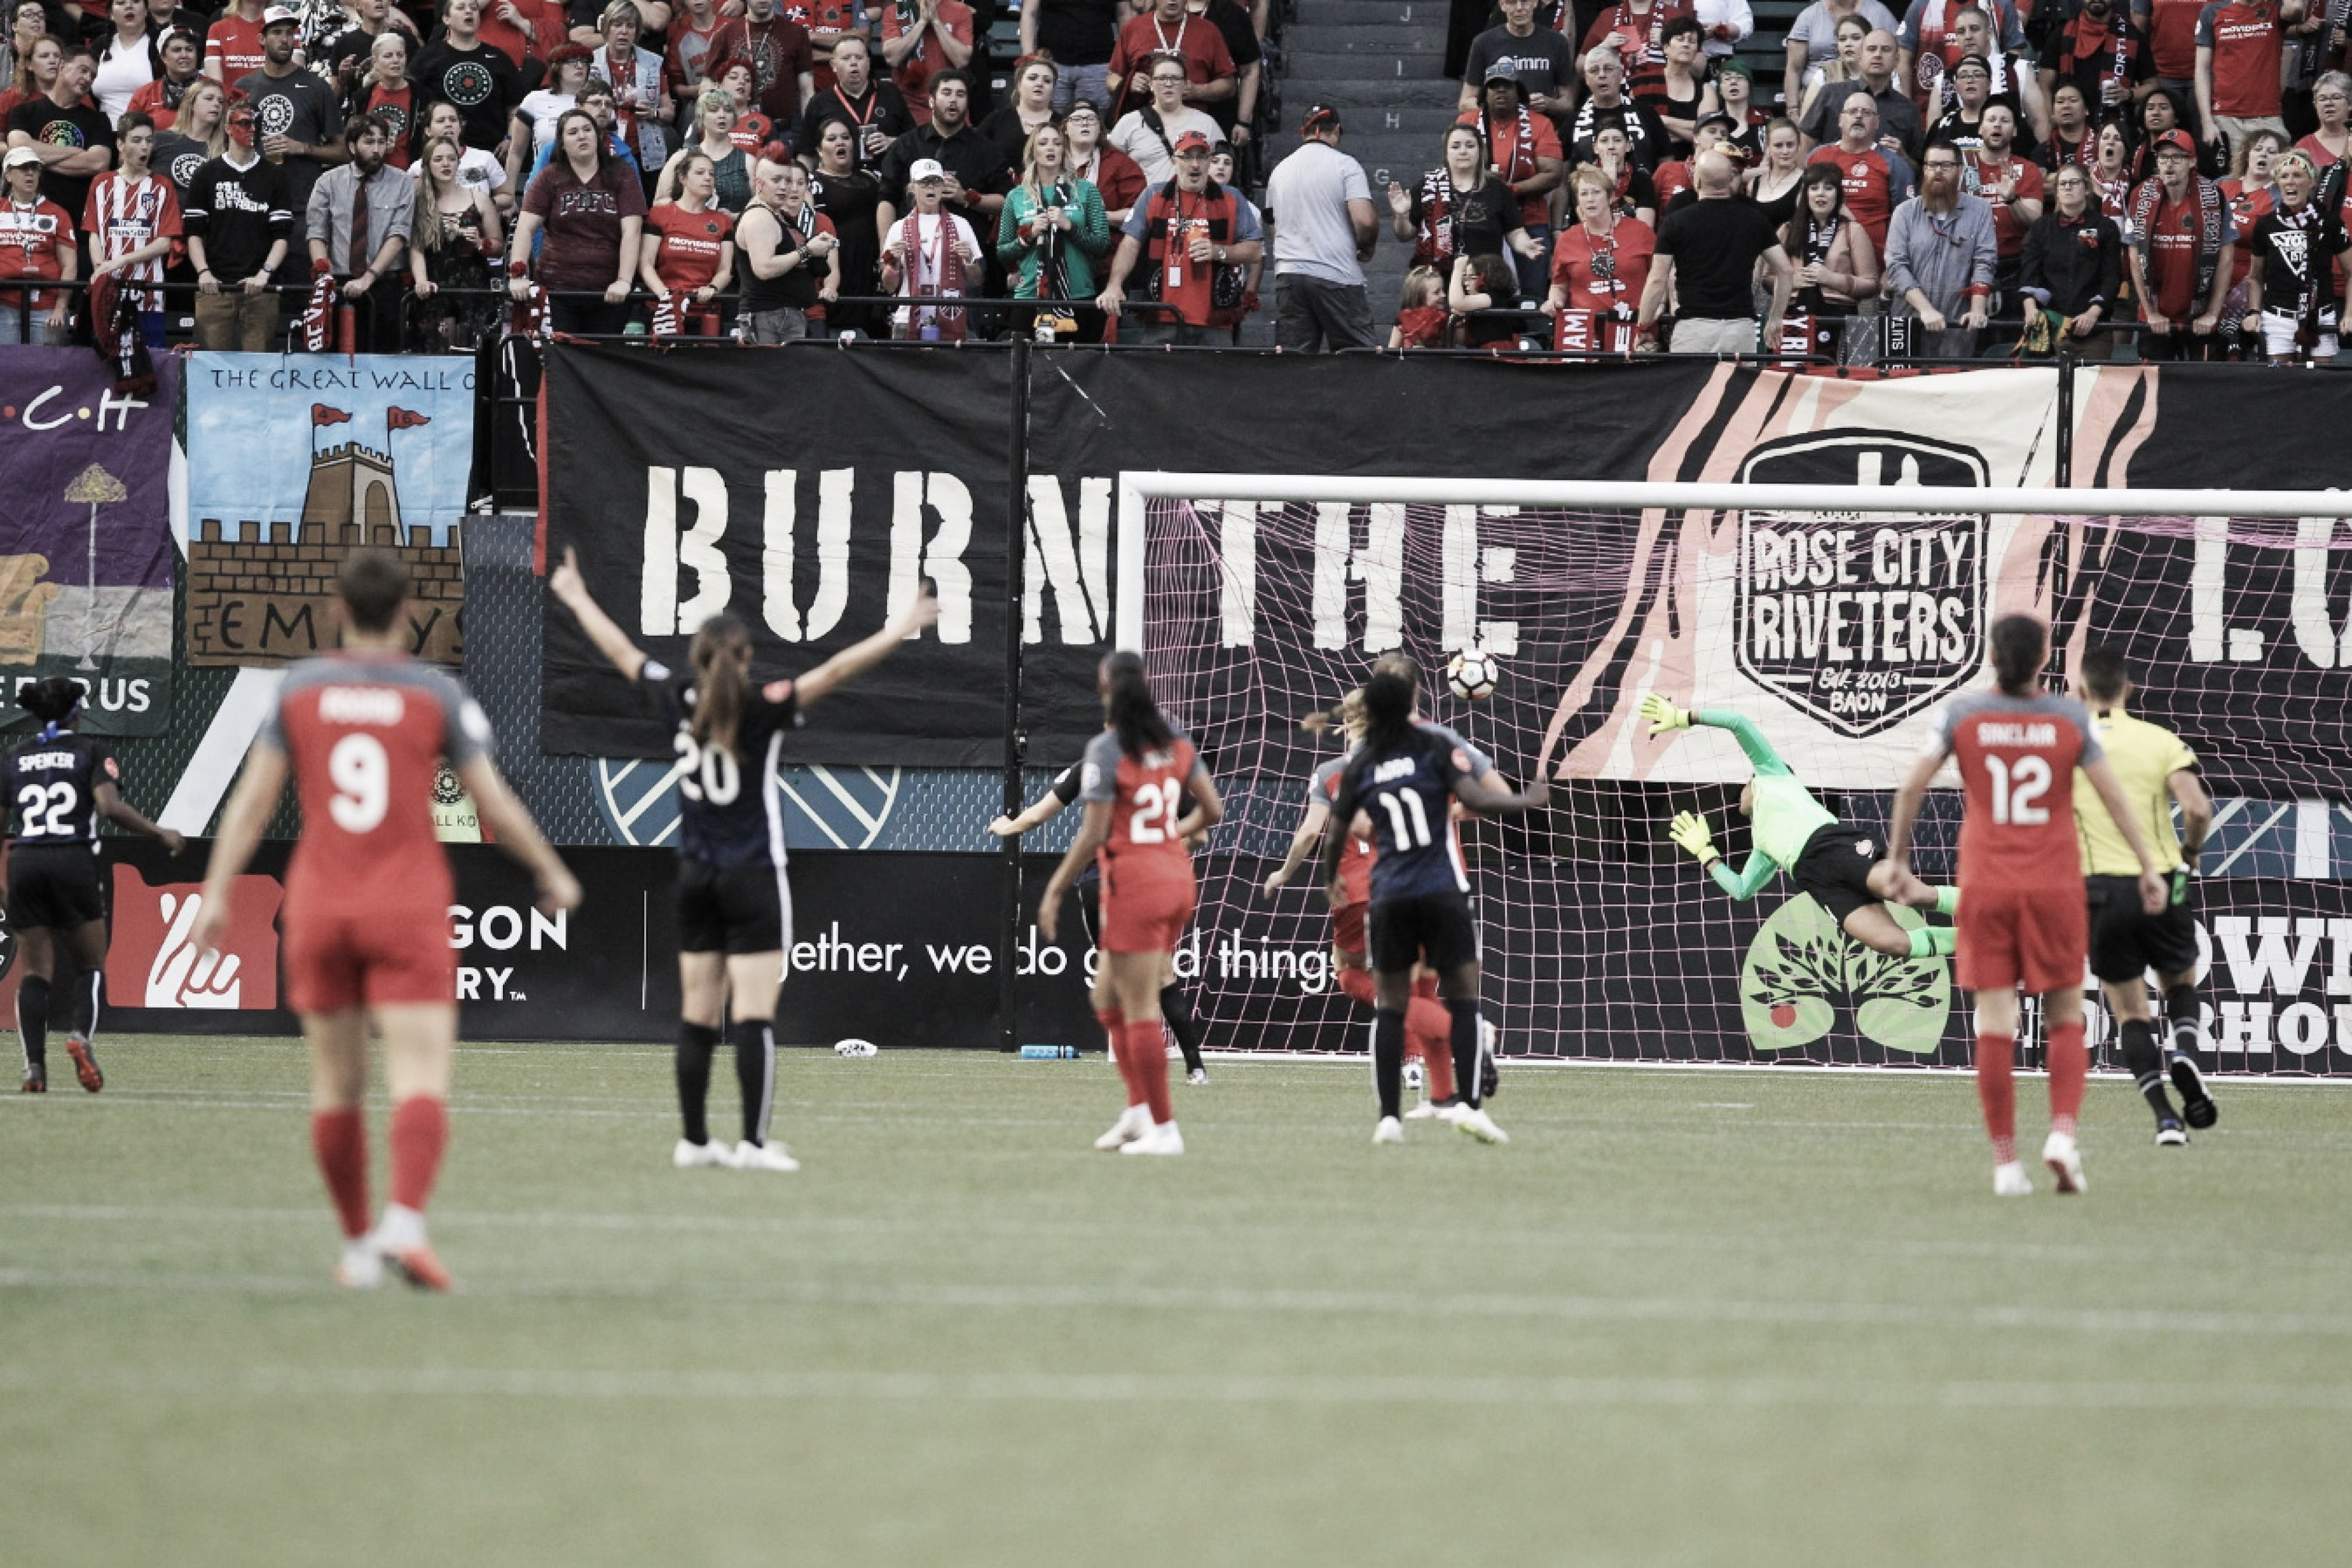 Portland Thorns FC vs Seattle Reign FC: Taking the Cascadia Rivalry to the playoffs